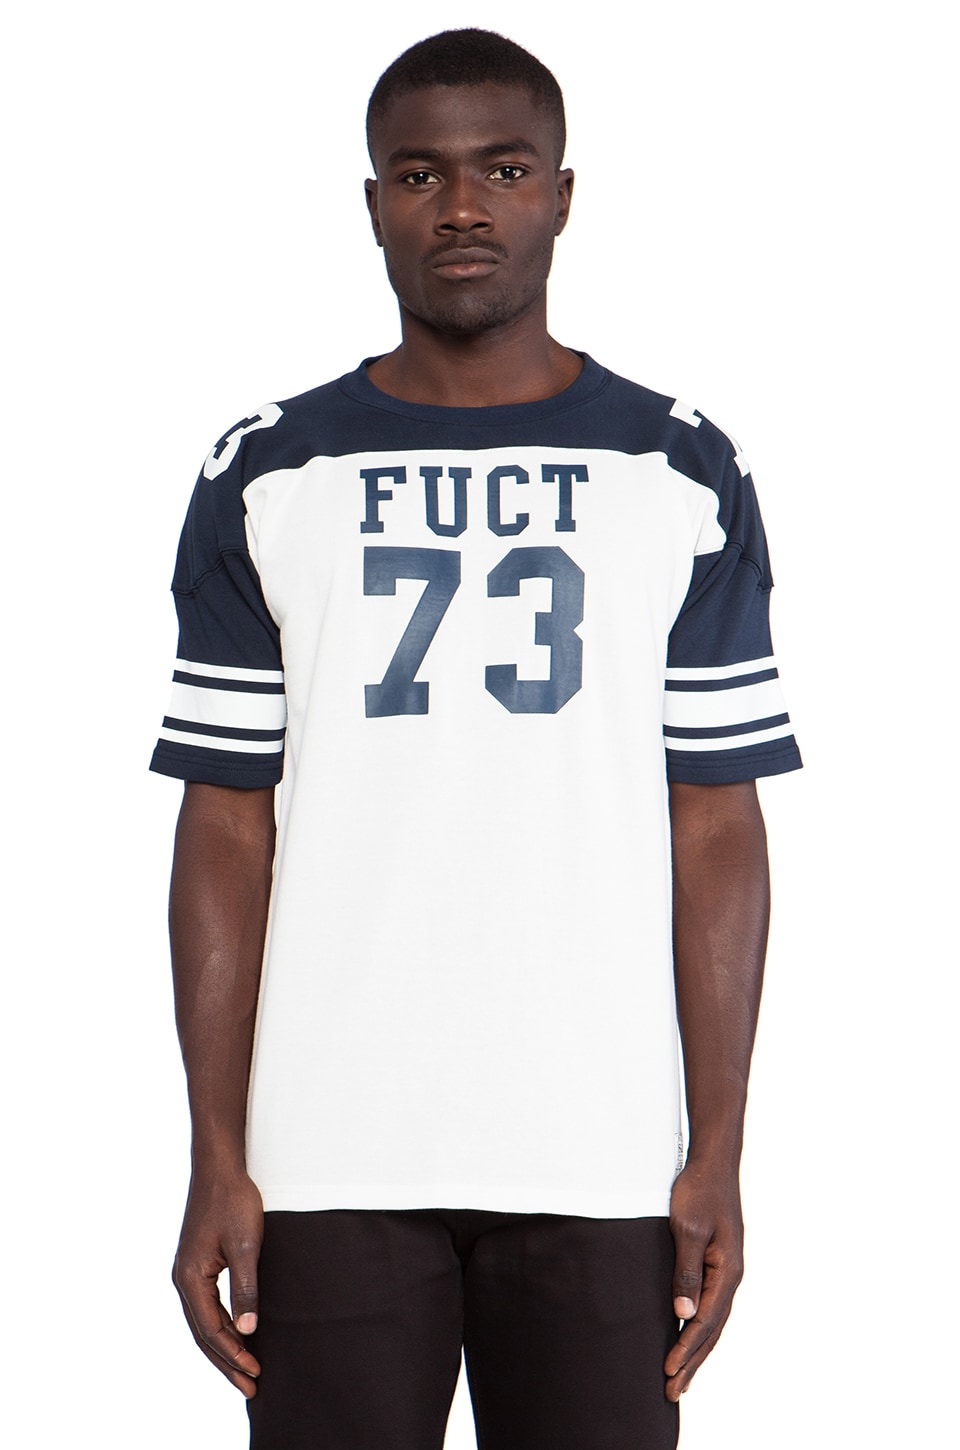 Fuct 73 Foot League Jersey in Off White/Navy